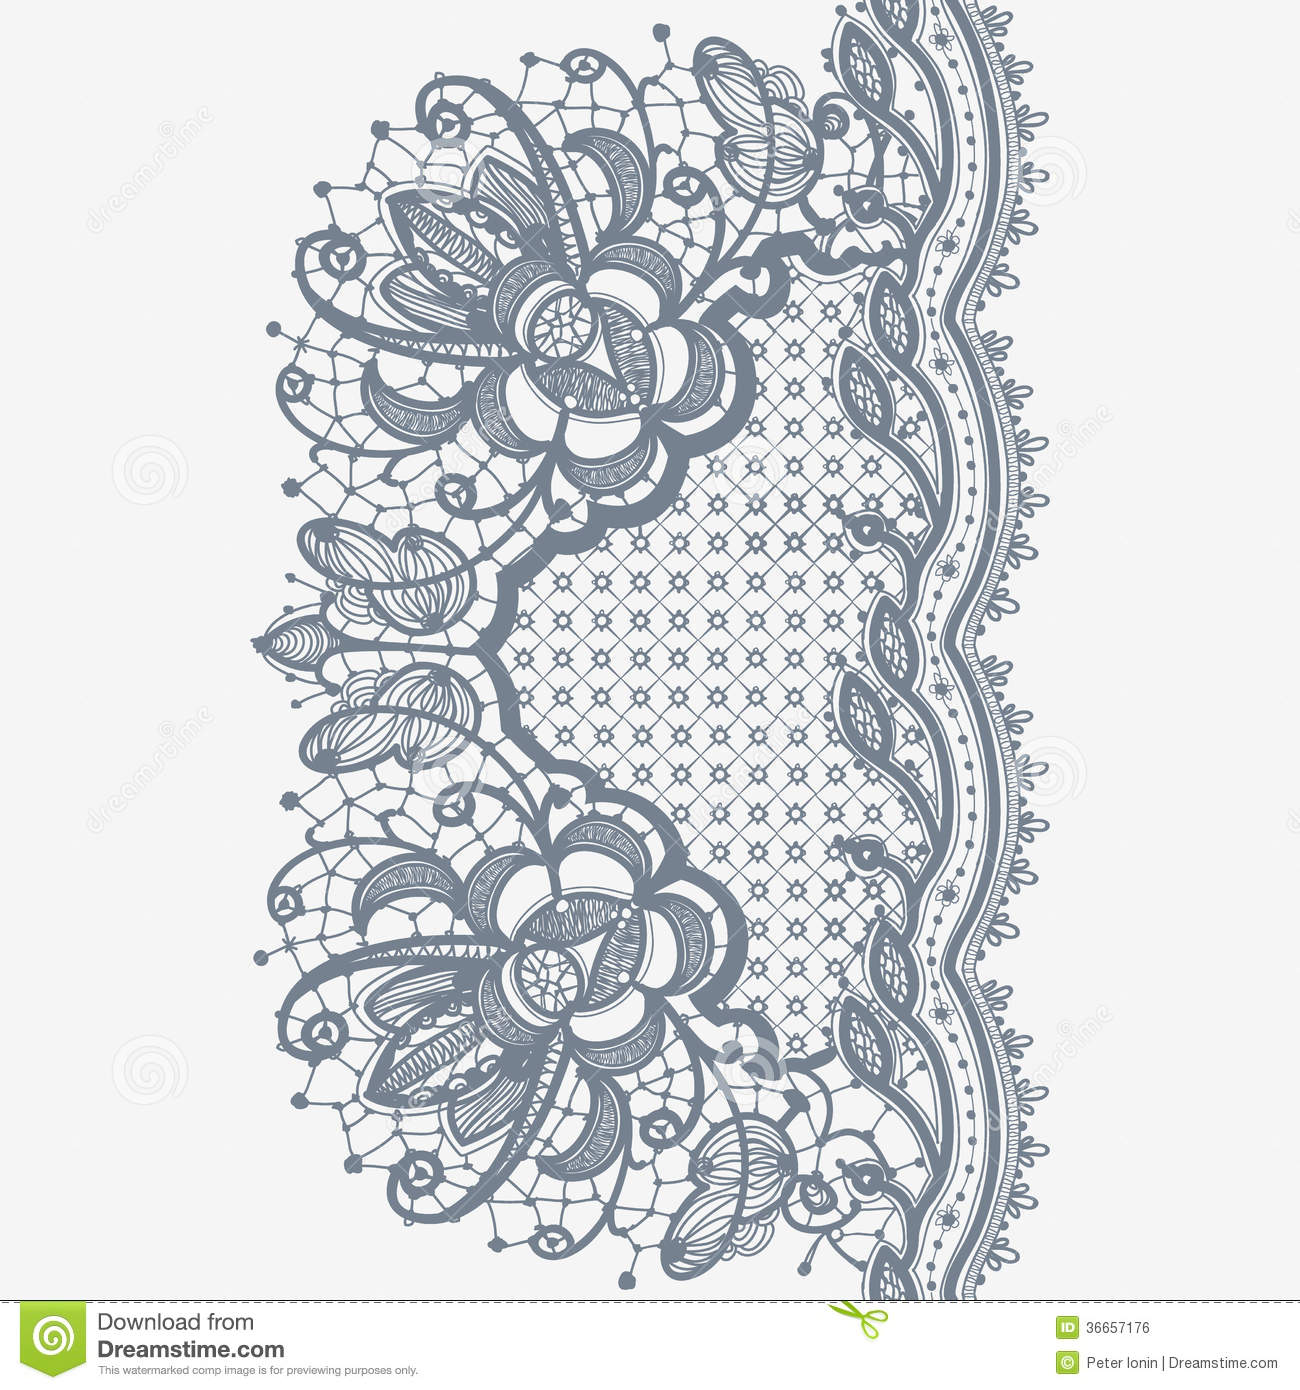 Abstract Lace Ribbon stock vector. Illustration of lace - 36657176